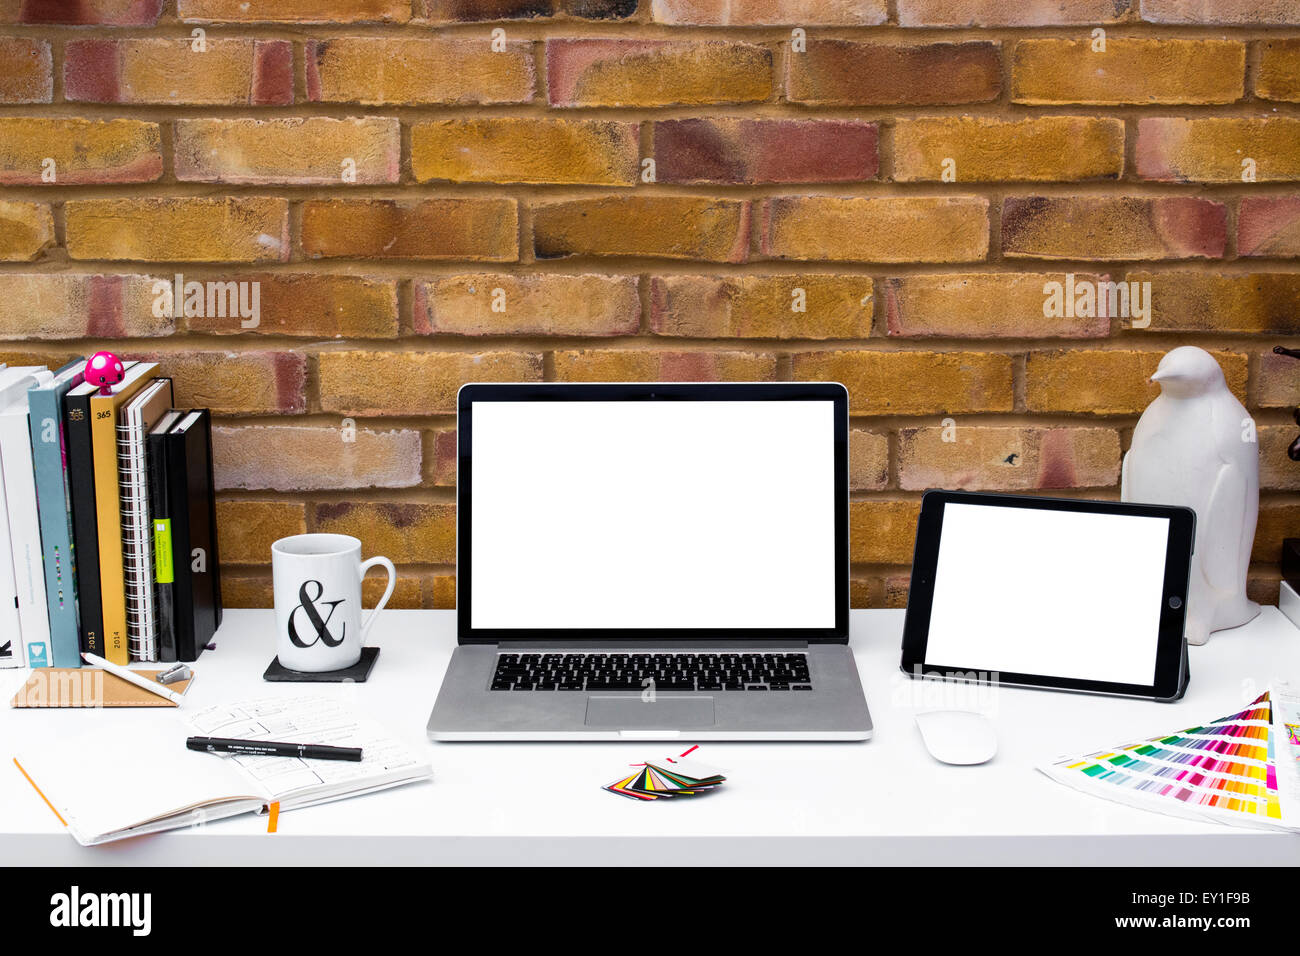 Creative Home Office space with graphic designers desk